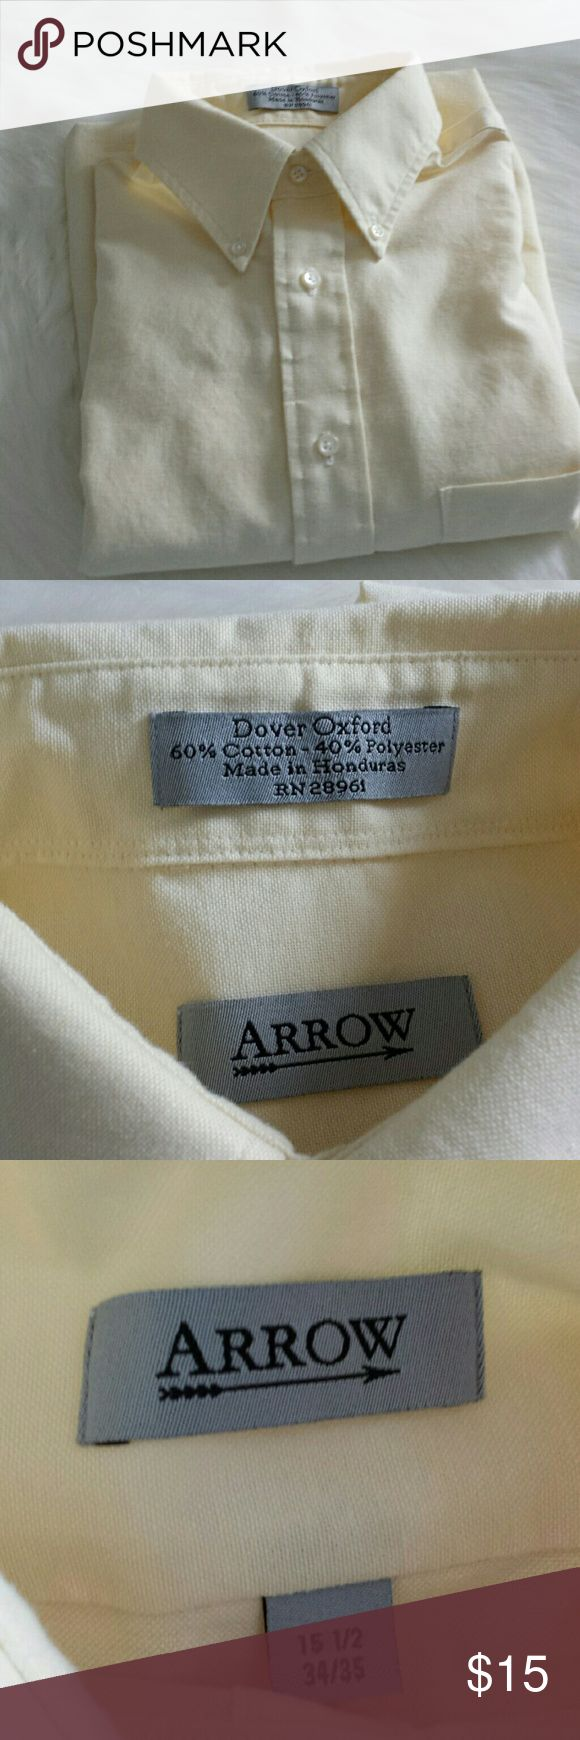 Arrow Button -Down Shirt Long Sleeve 15  1/ 2 Pale yellow, EUC, never worn, freshly washed.   34/35 Sleeve. Classic fit. Make an offer or bundle for a great deal! Arrow Shirts Dress Shirts